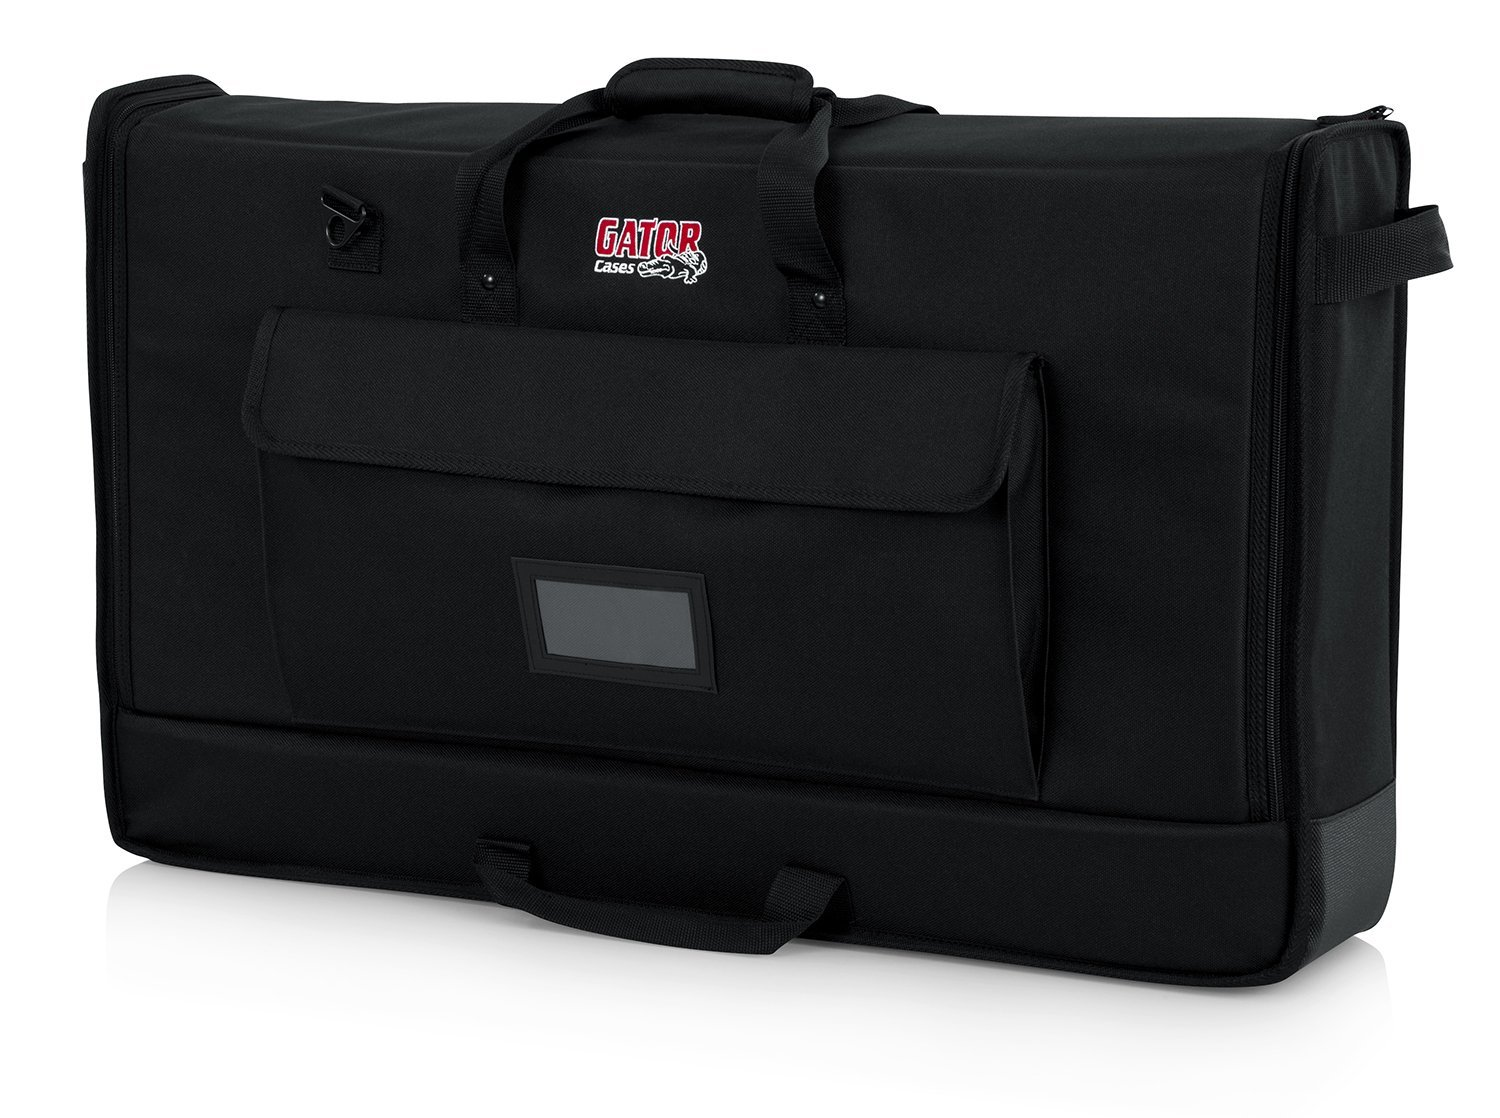 Gator Cases Padded Nylon Carry Tote Bag for Transporting LCD Screens, Monitors and TVs Between 27'' - 32'' (G-LCD-TOTE-MD)